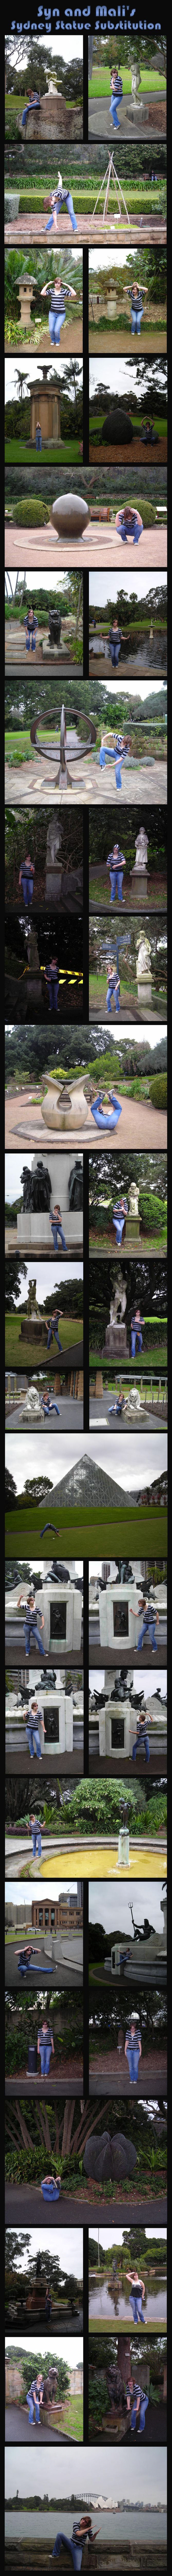 SP4: Sydney Statue Substitution by Synfull